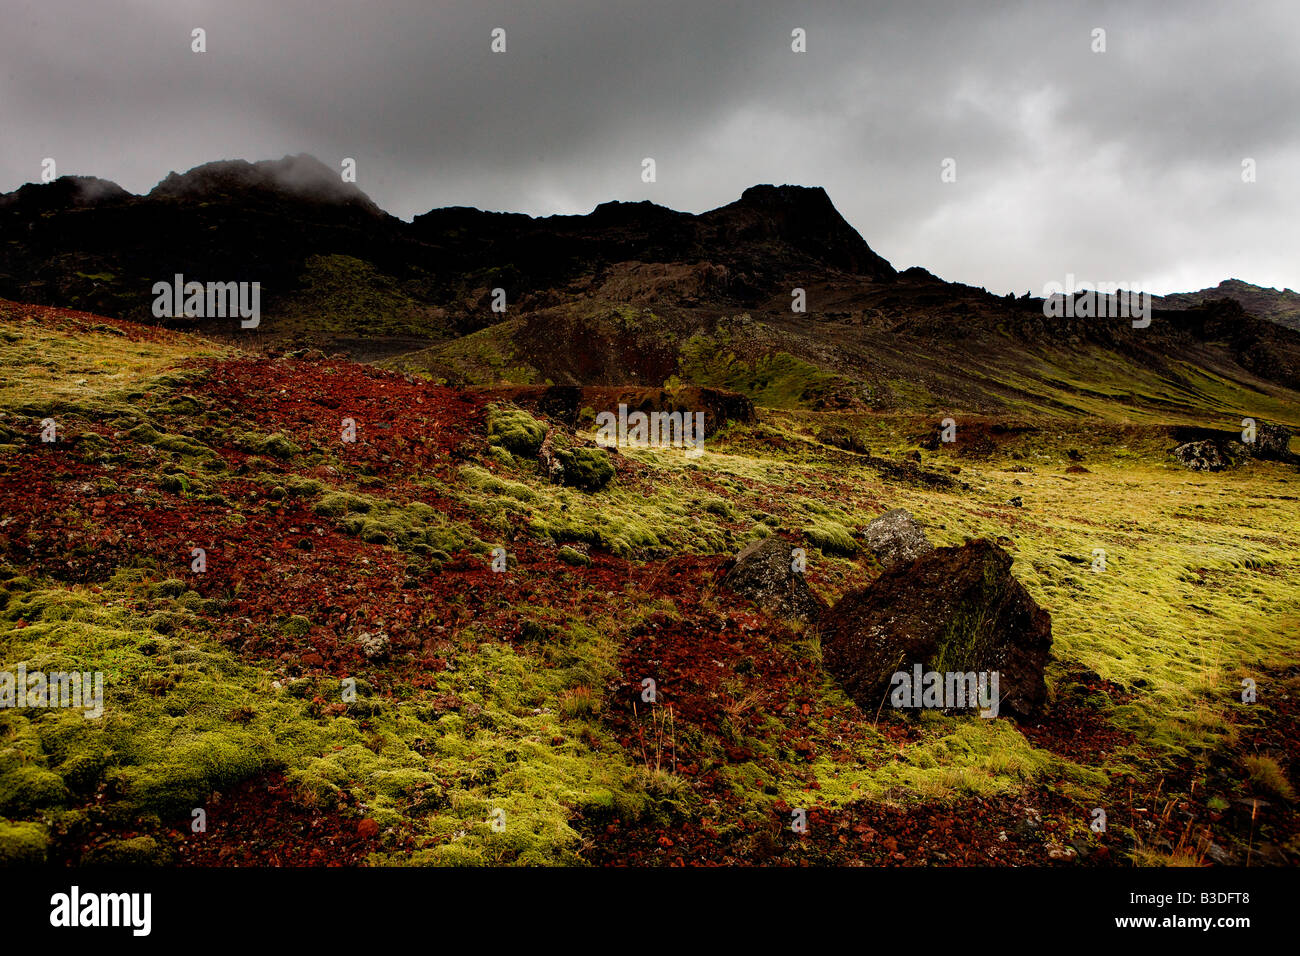 Péninsule de Krisuvik paysage Islande Photo Stock